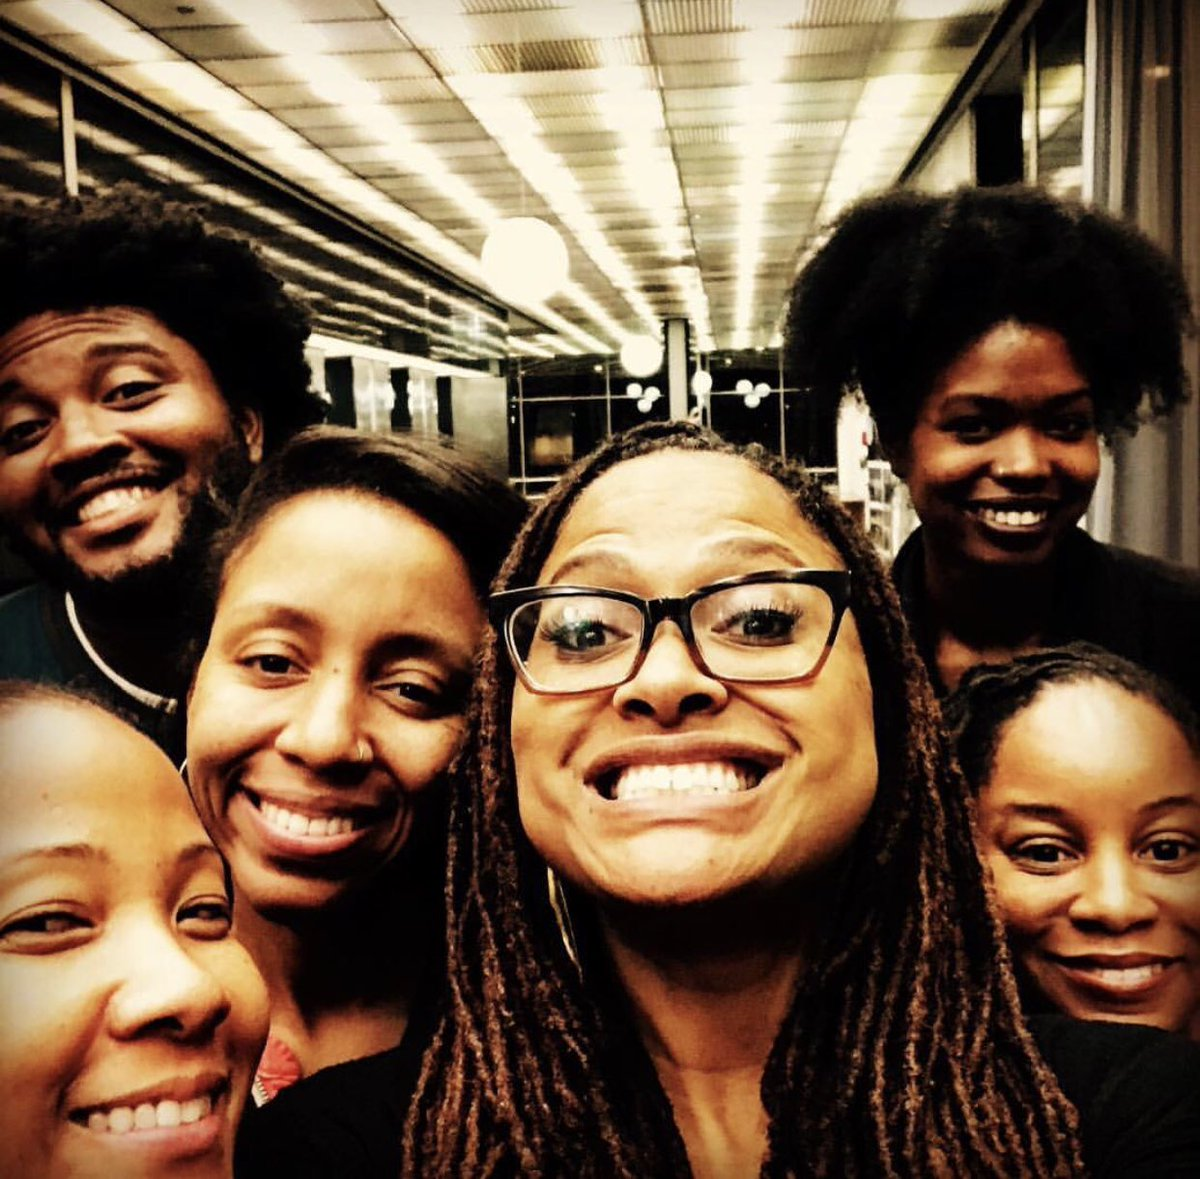 We love this @ARRAYNow selfie with founder Ava DuVernay! #DreamTeam #NationalSelfieDay